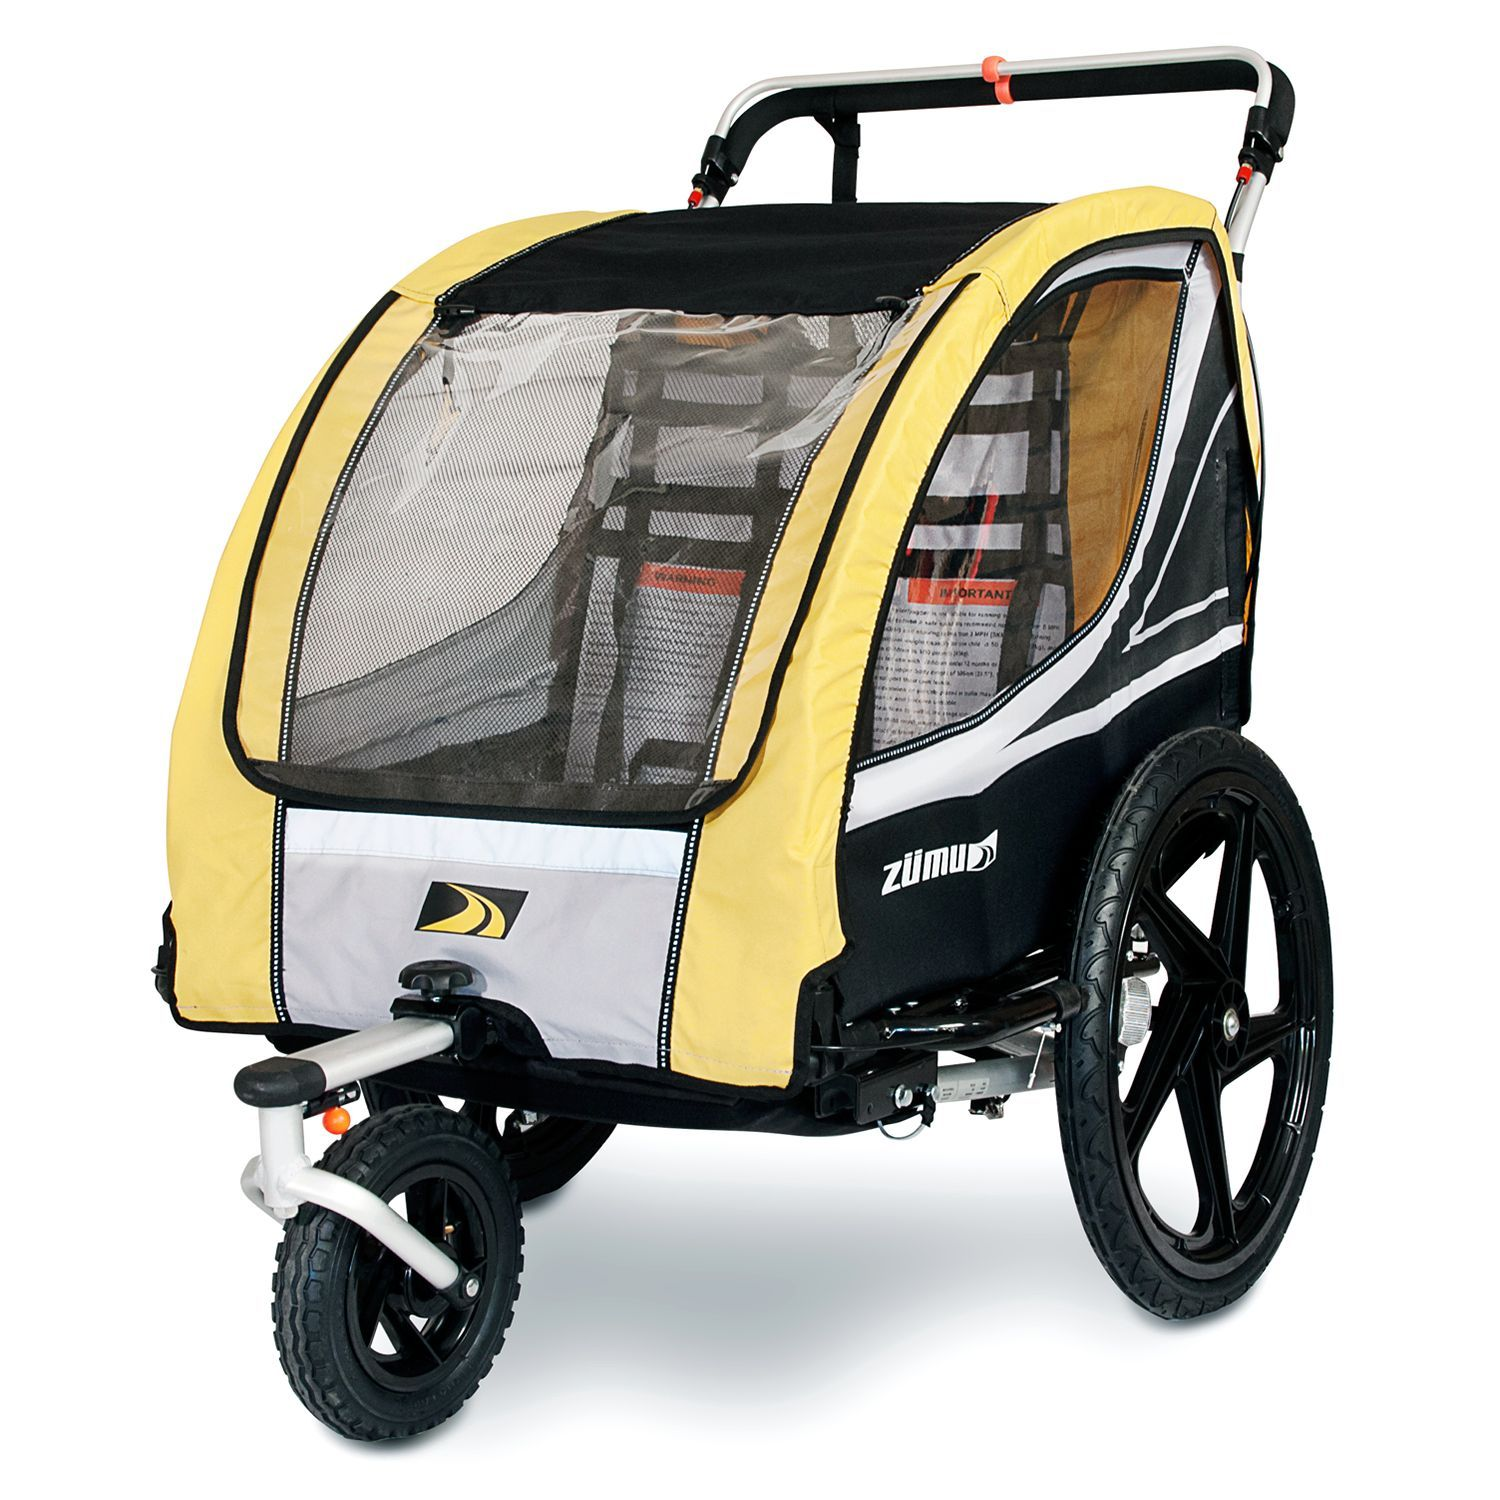 Zumu Jogging Stroller This 3 In 1 Bike Trailer Doubles As A Stroller Jogger